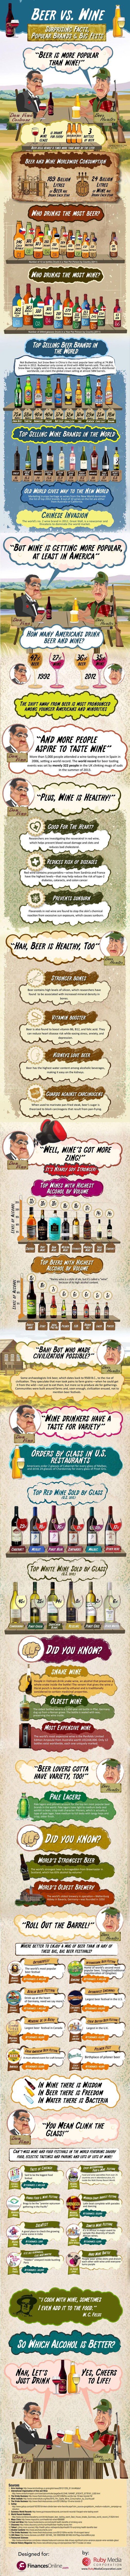 Beer vs. Wine @ Pinfographics